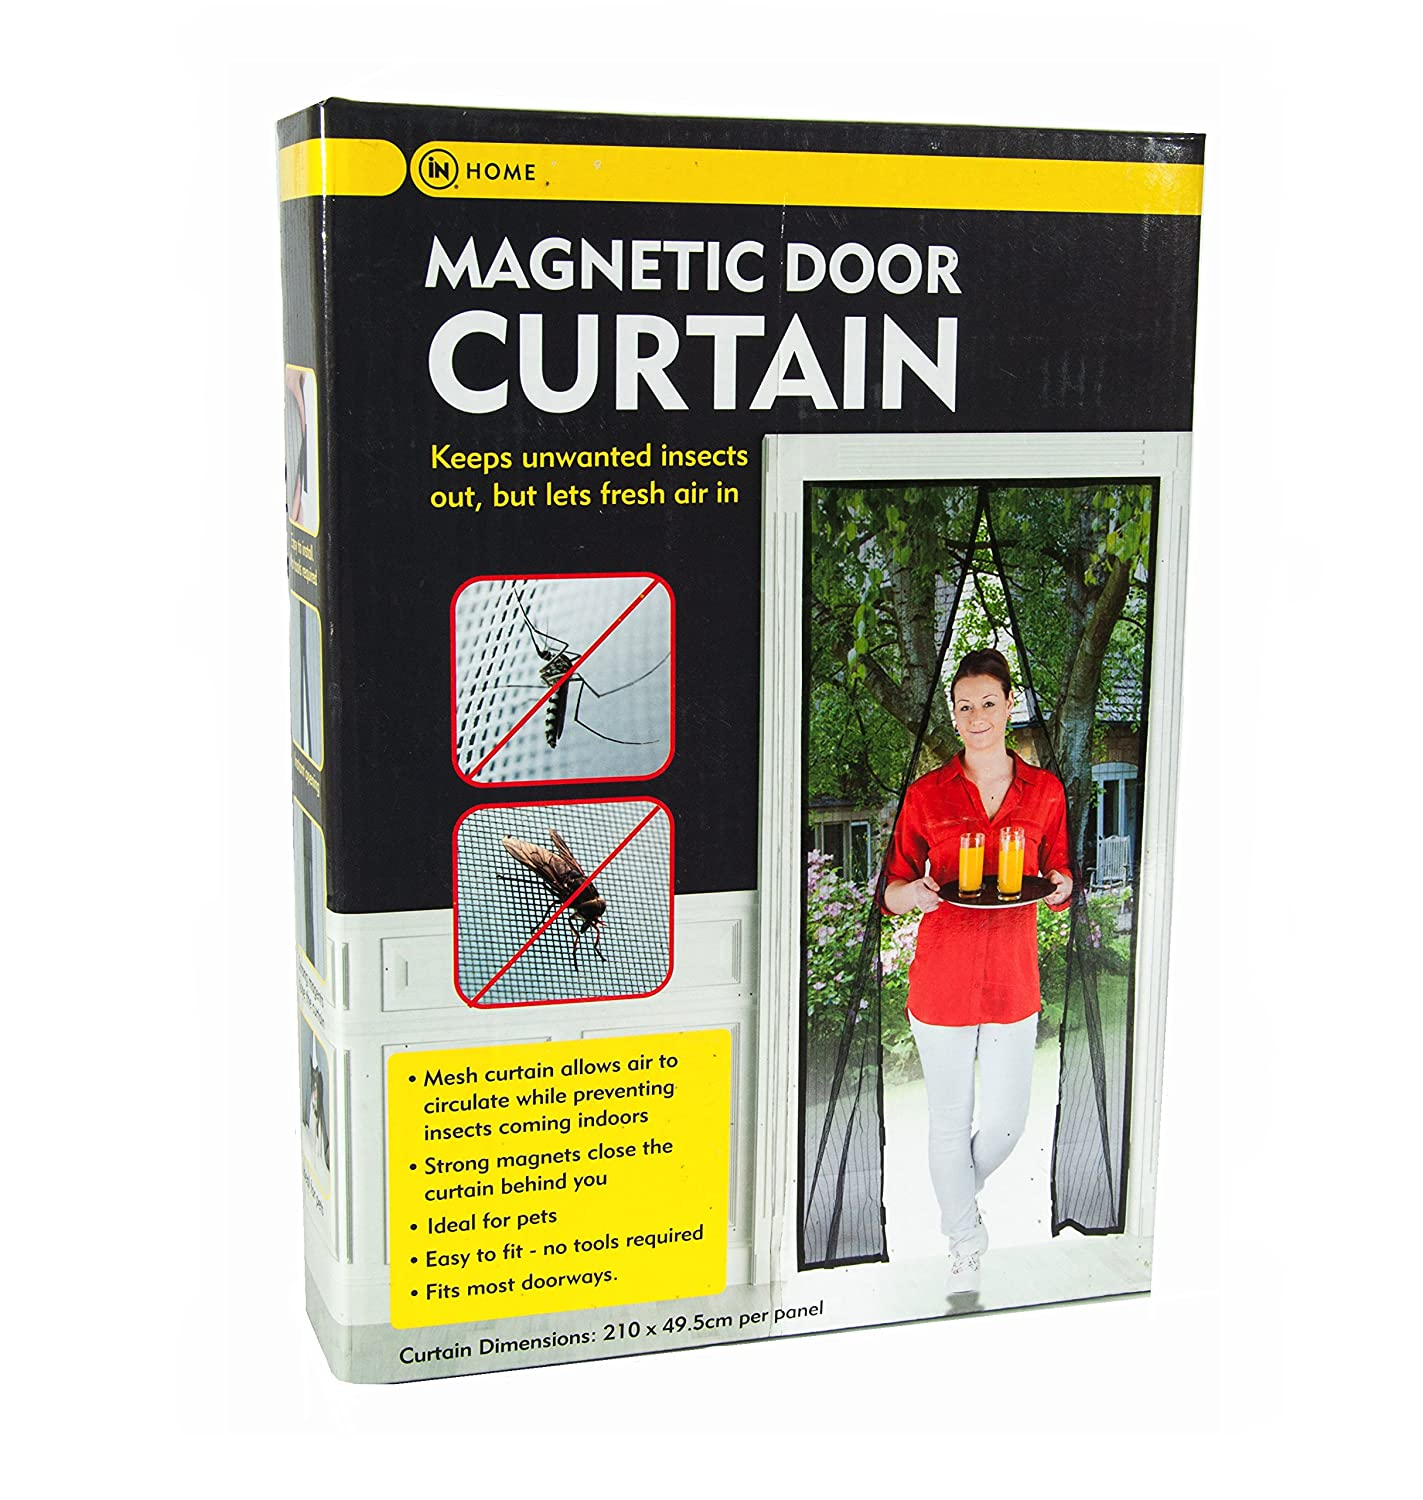 Magnetic Door Curtain Screen to Keep Flies and Insects Out, Keeps Pets Out and In - Strong Magnet Mesh Curtain Allows Air to Circulate While Keeping bugs Out - 210cm Drop x 49.5cm Across Per Panel InHome